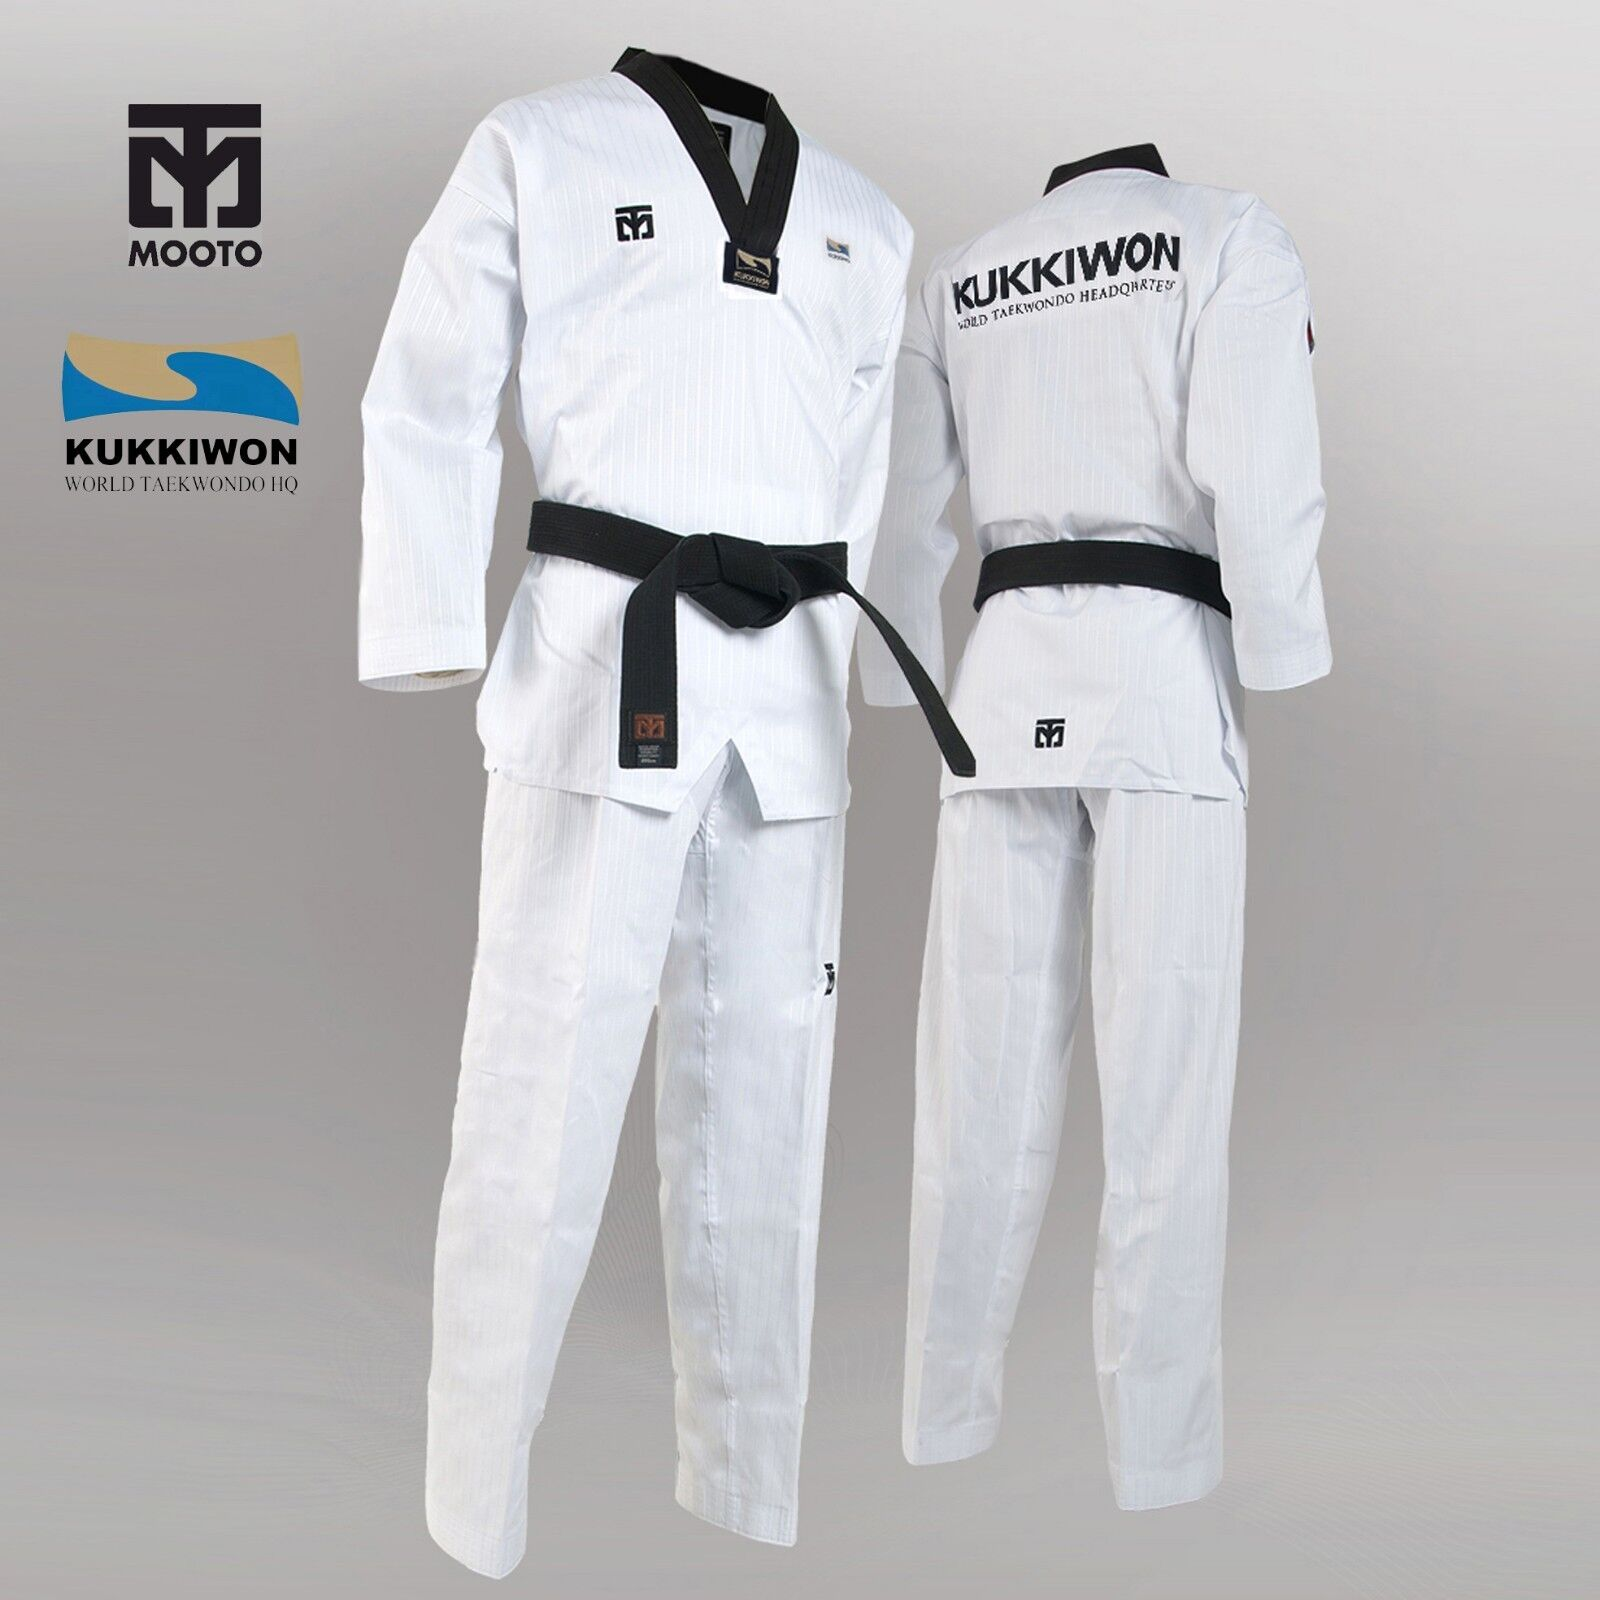 Original Official Mooto Kukkiwon Taekwondo Dobok Uniform Gi TKD KTA Approved New